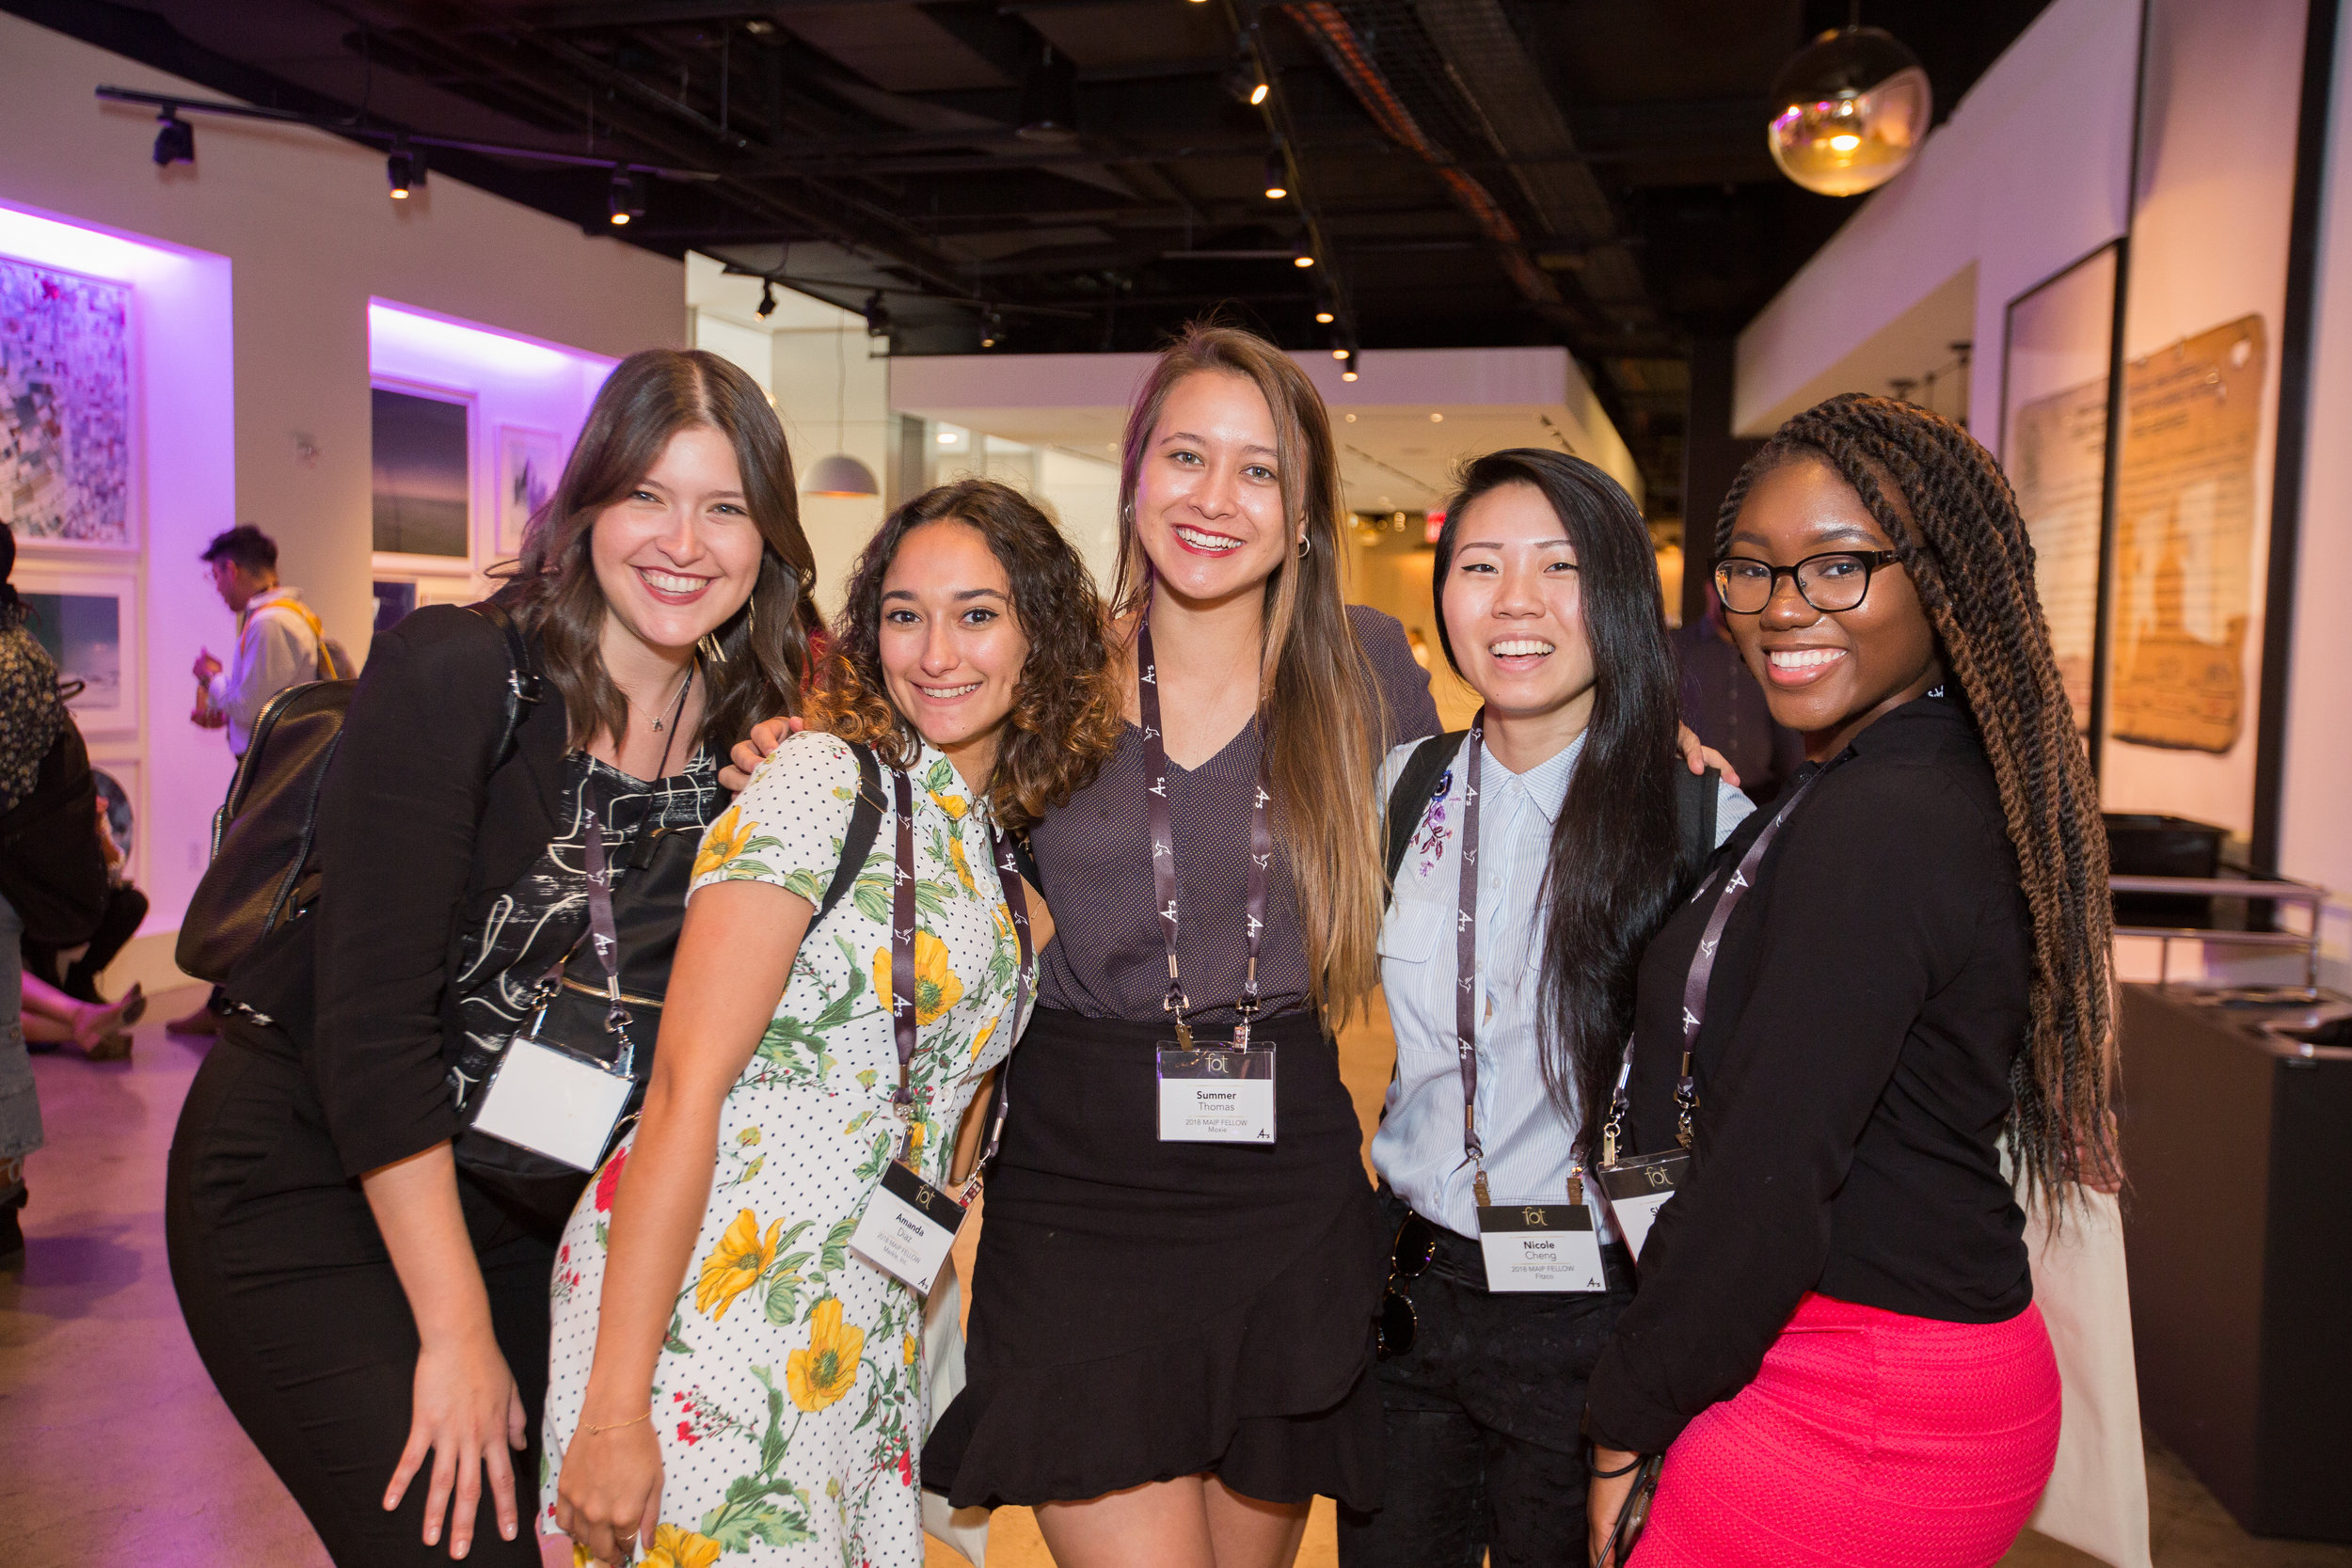 4As_MAIP_FOT_Career_Fair_2018_Margarita_Corporan-43.jpg